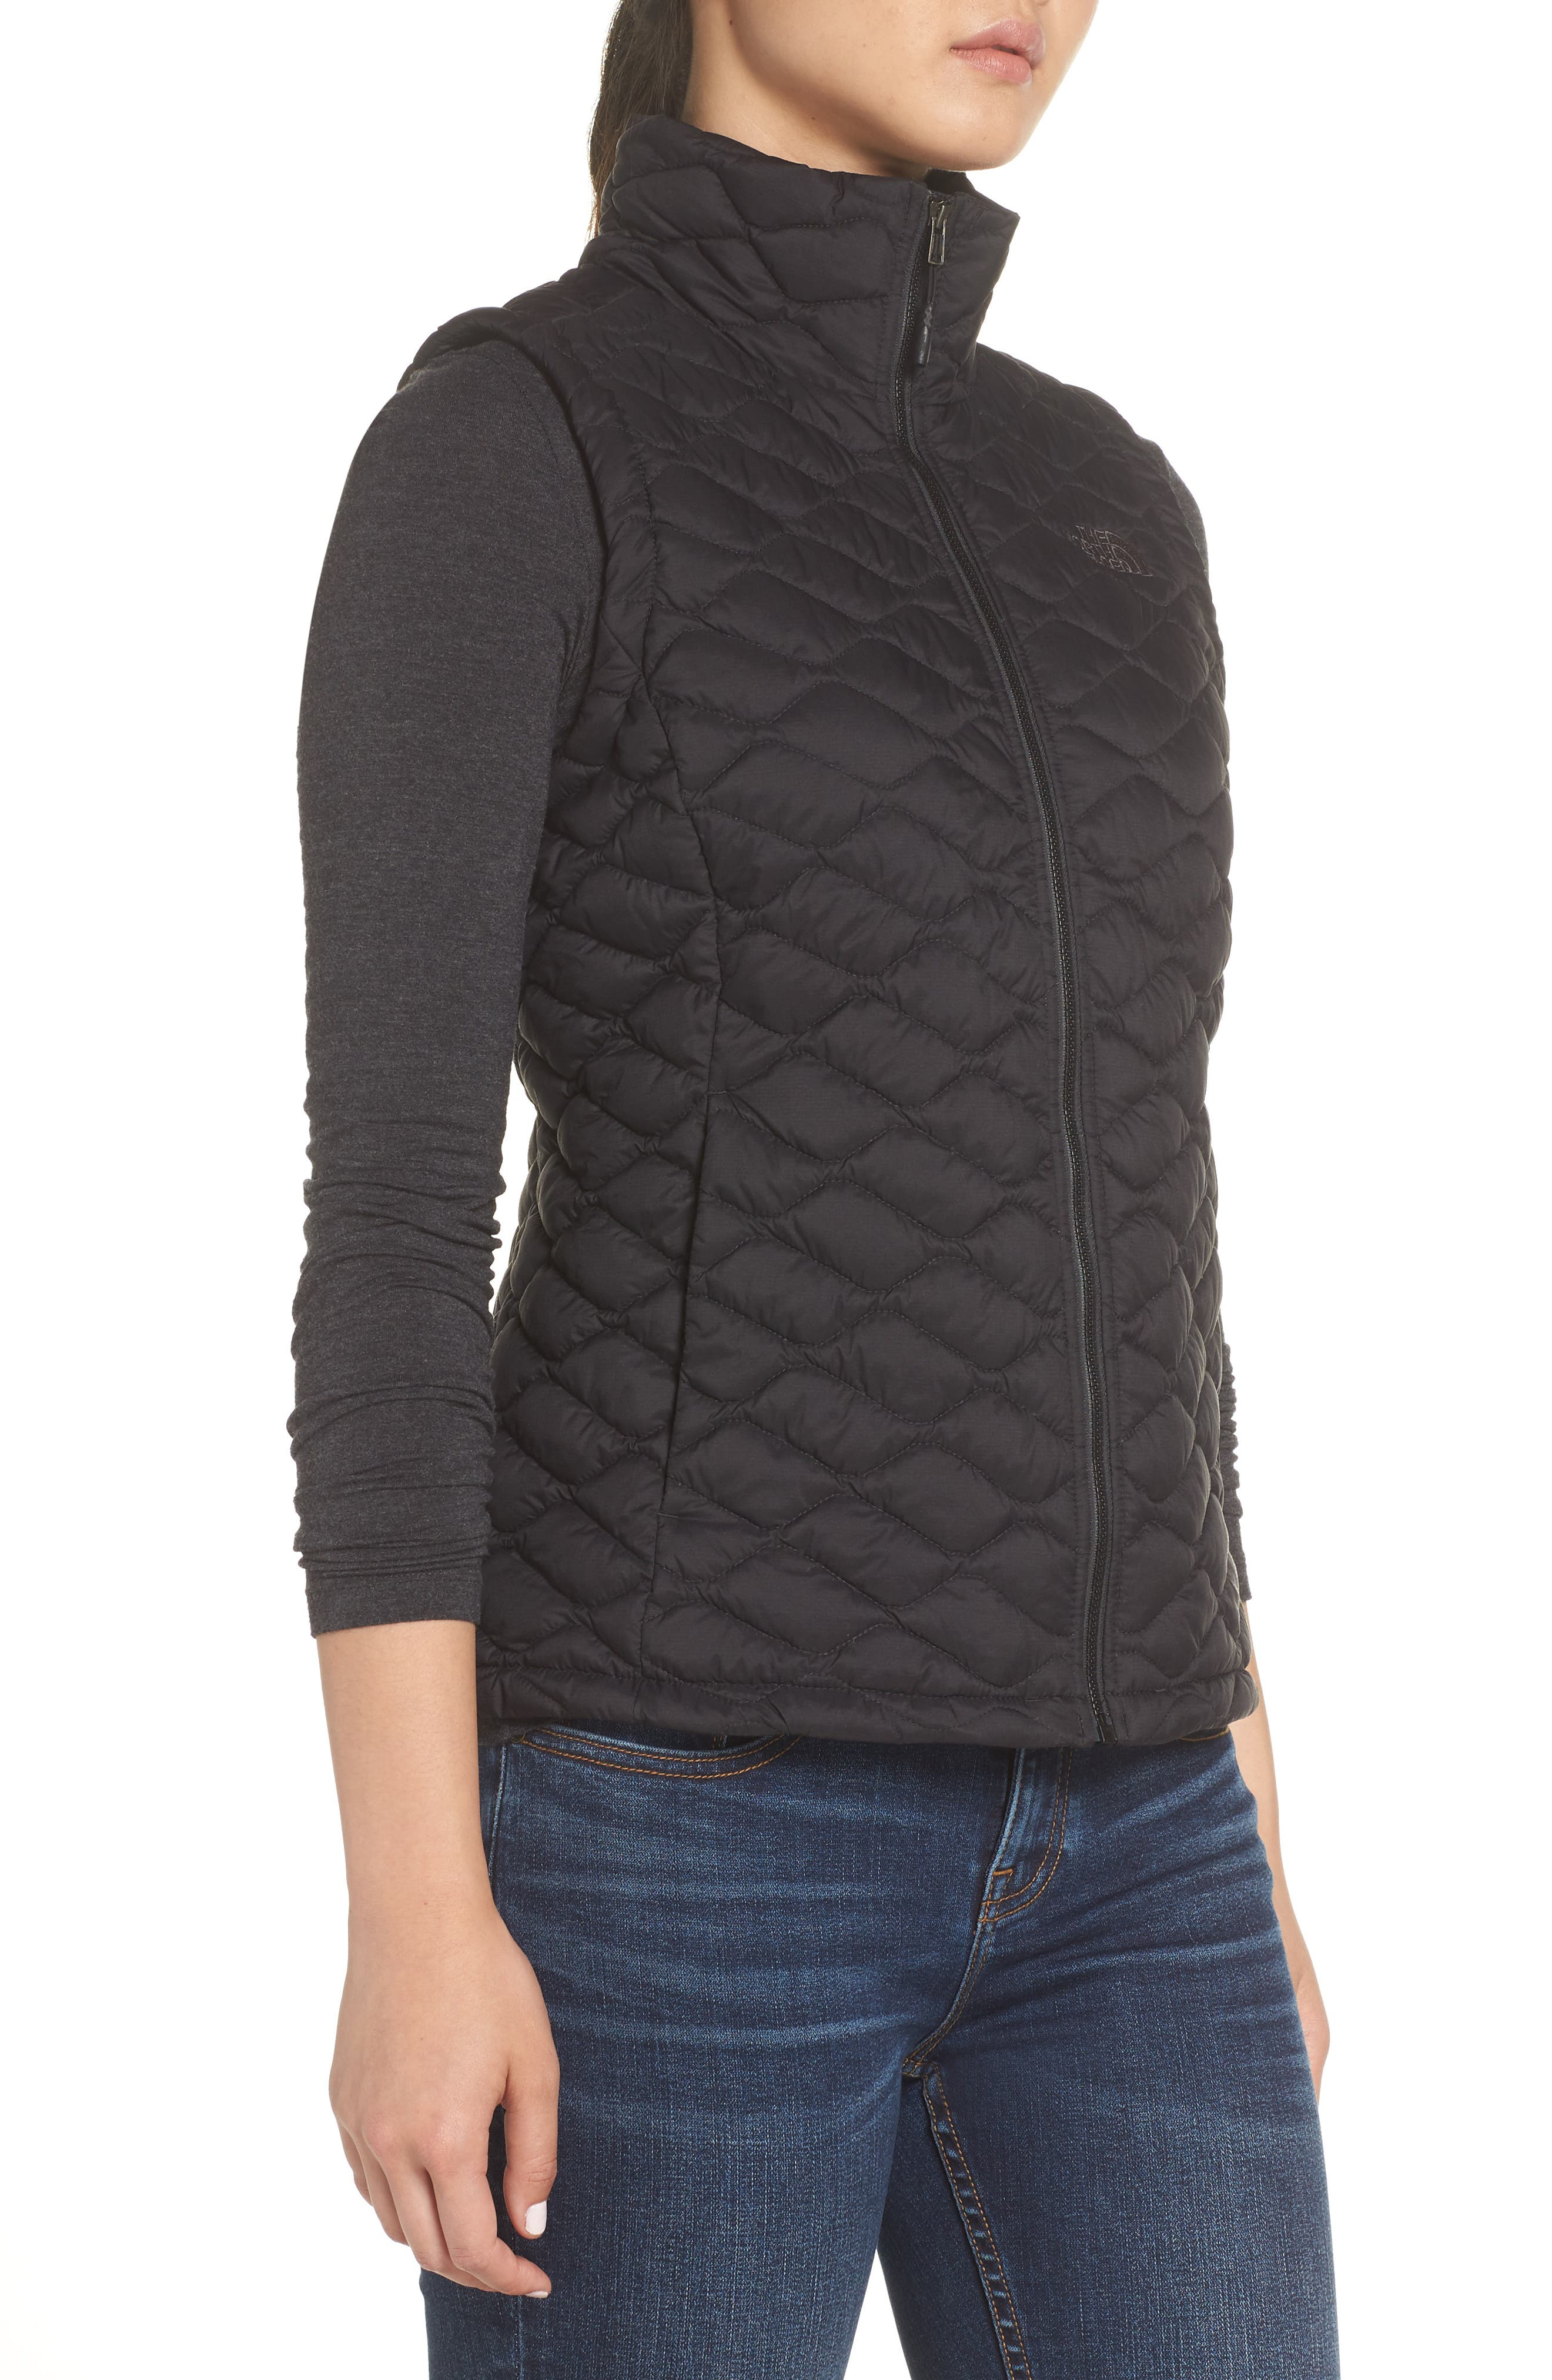 THE NORTH FACE,                             ThermoBall<sup>™</sup> PrimaLoft<sup>®</sup> Vest,                             Alternate thumbnail 3, color,                             TNF BLACK MATTE